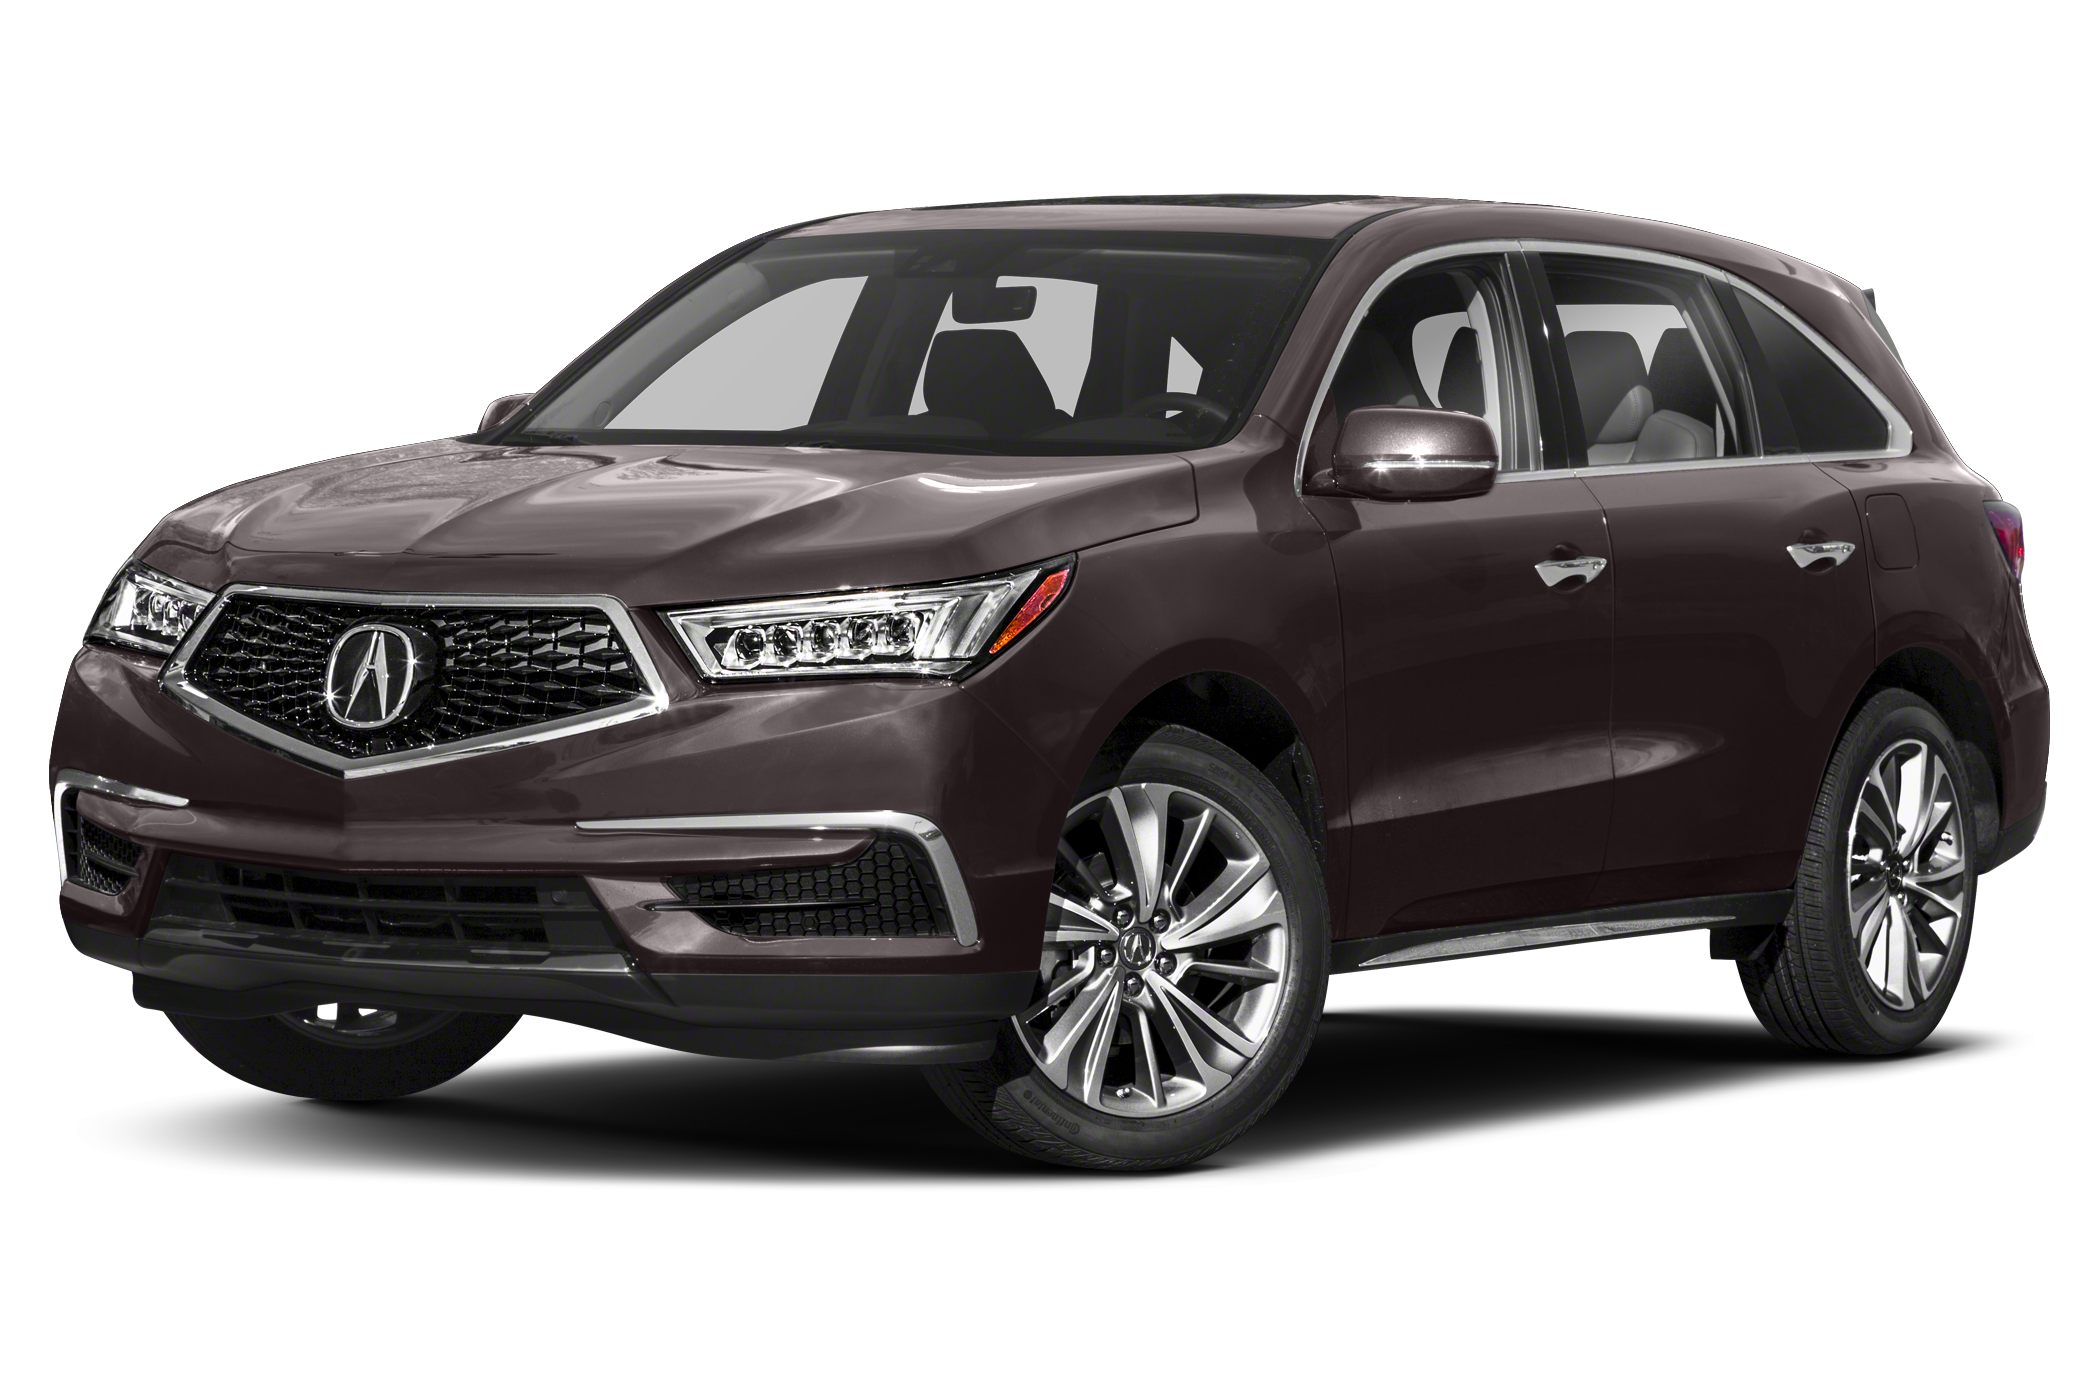 2018 ACURA MDX 3.5 TECHNOLOGY